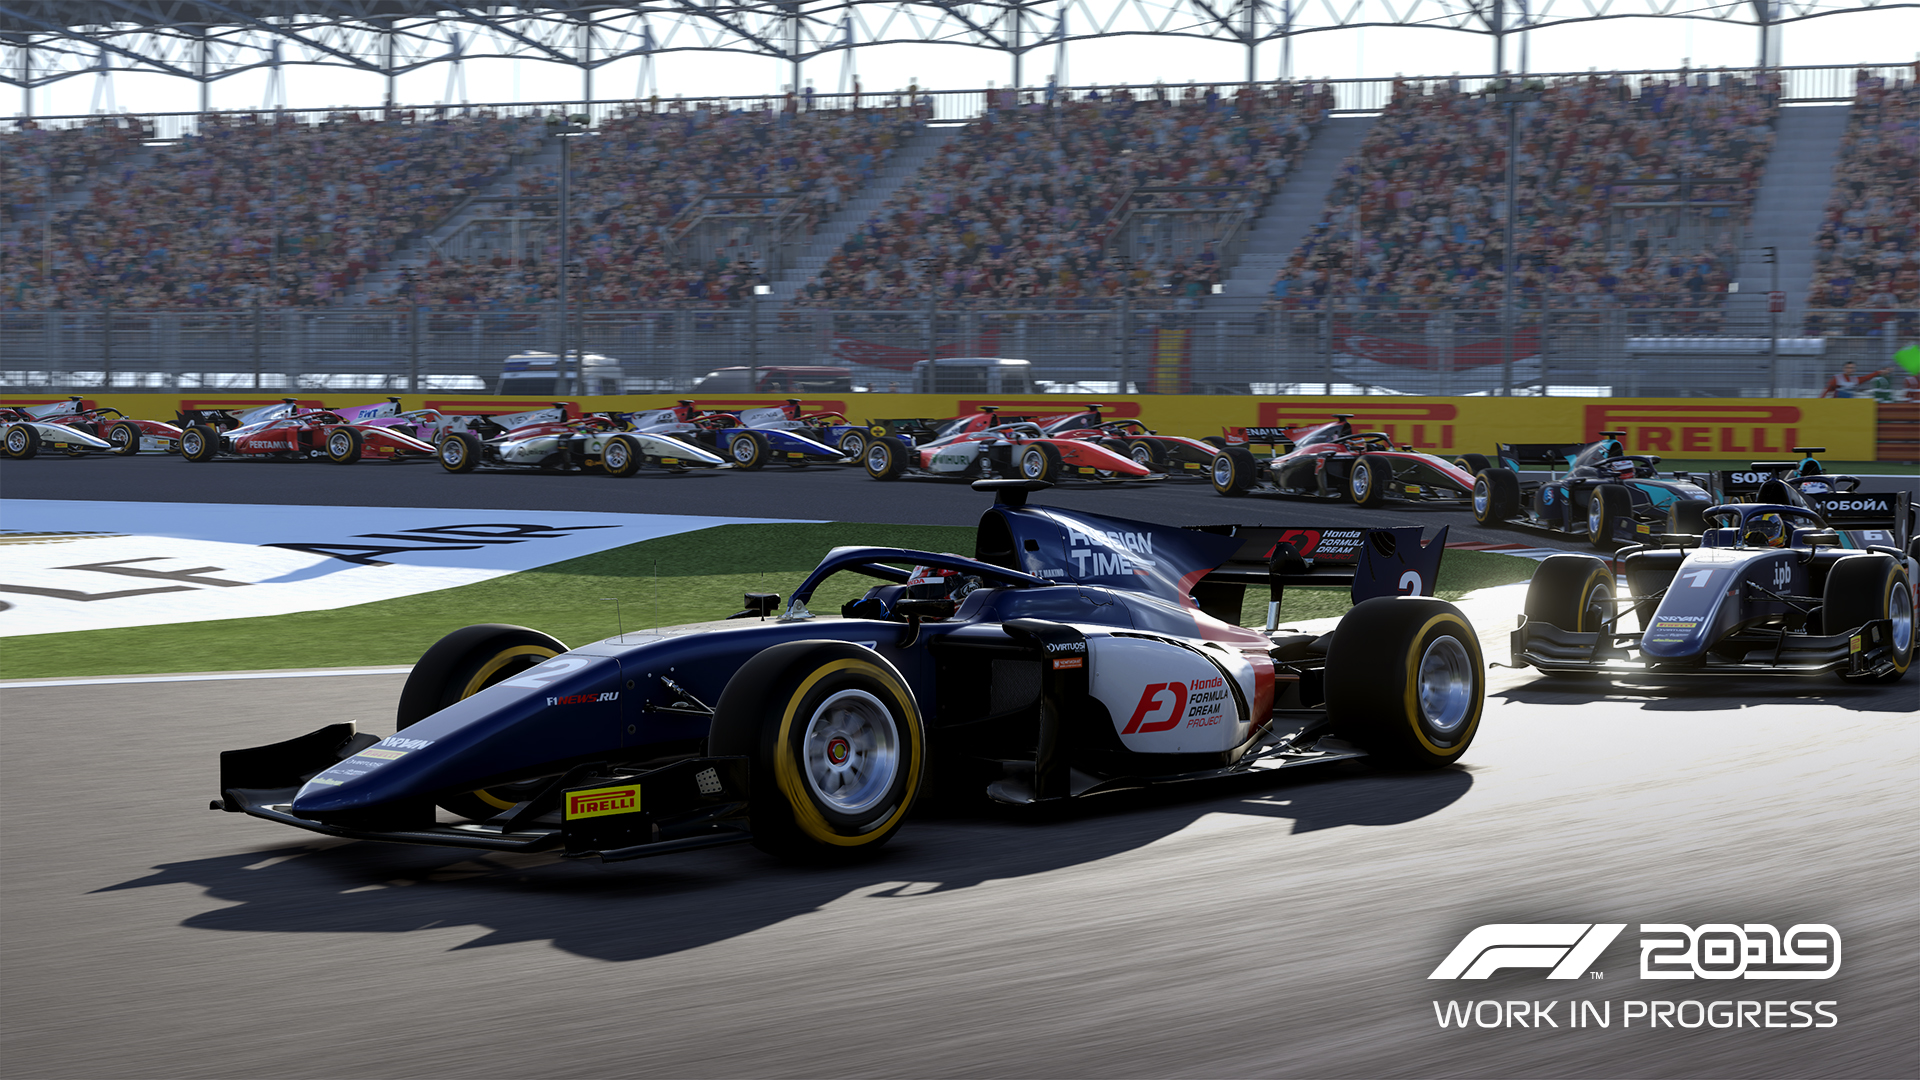 F1 2019's compatible wheels and controllers revealed - Team VVV